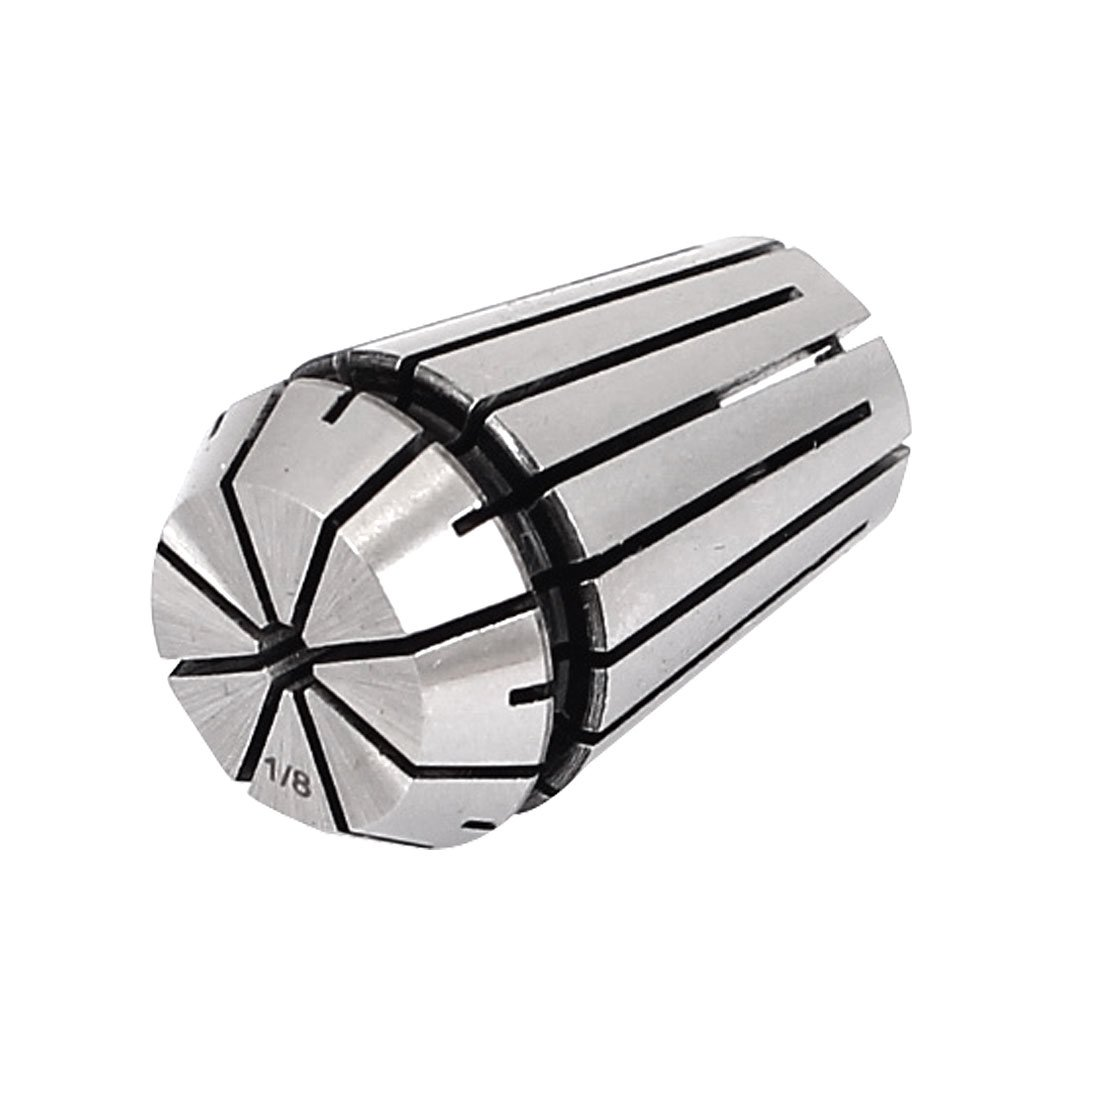 uxcell ER20 6mm Stainless Steel Spring Collet Chuck Milling Lathe Tool